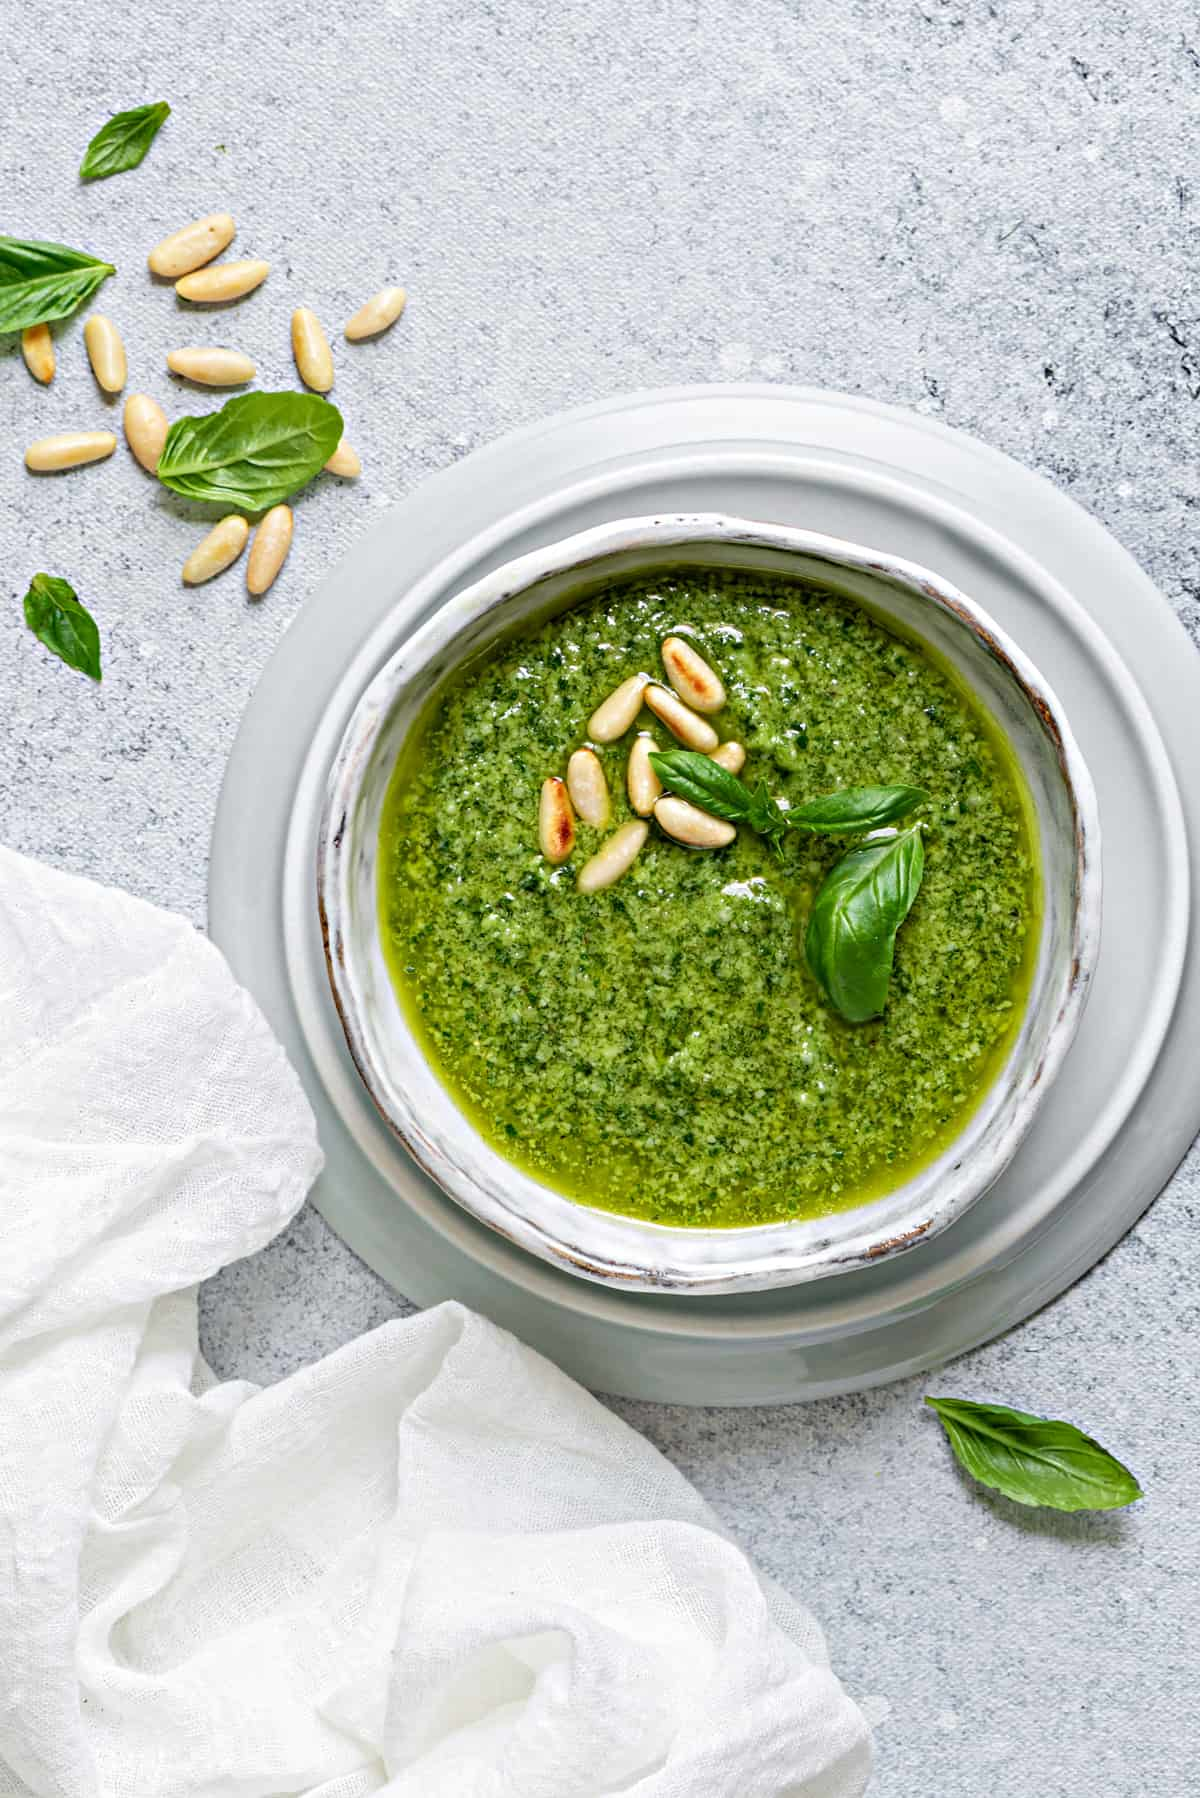 basil pesto in a serving dish on a grey table with a scattering of toasted pine nuts